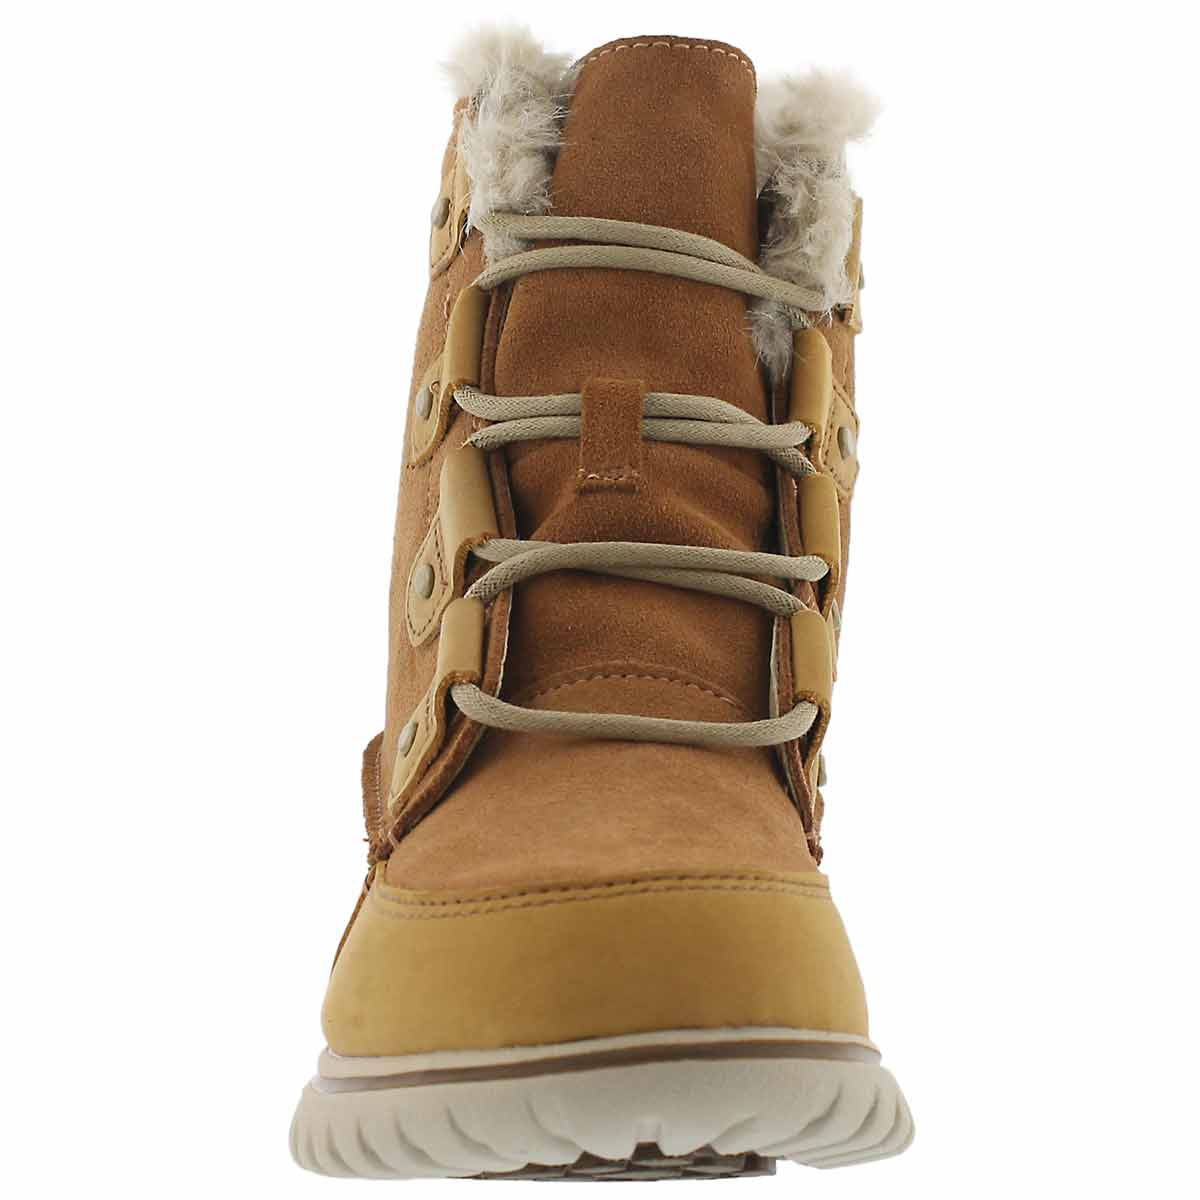 Lds Cozy Joan elk wtpf lace up boot